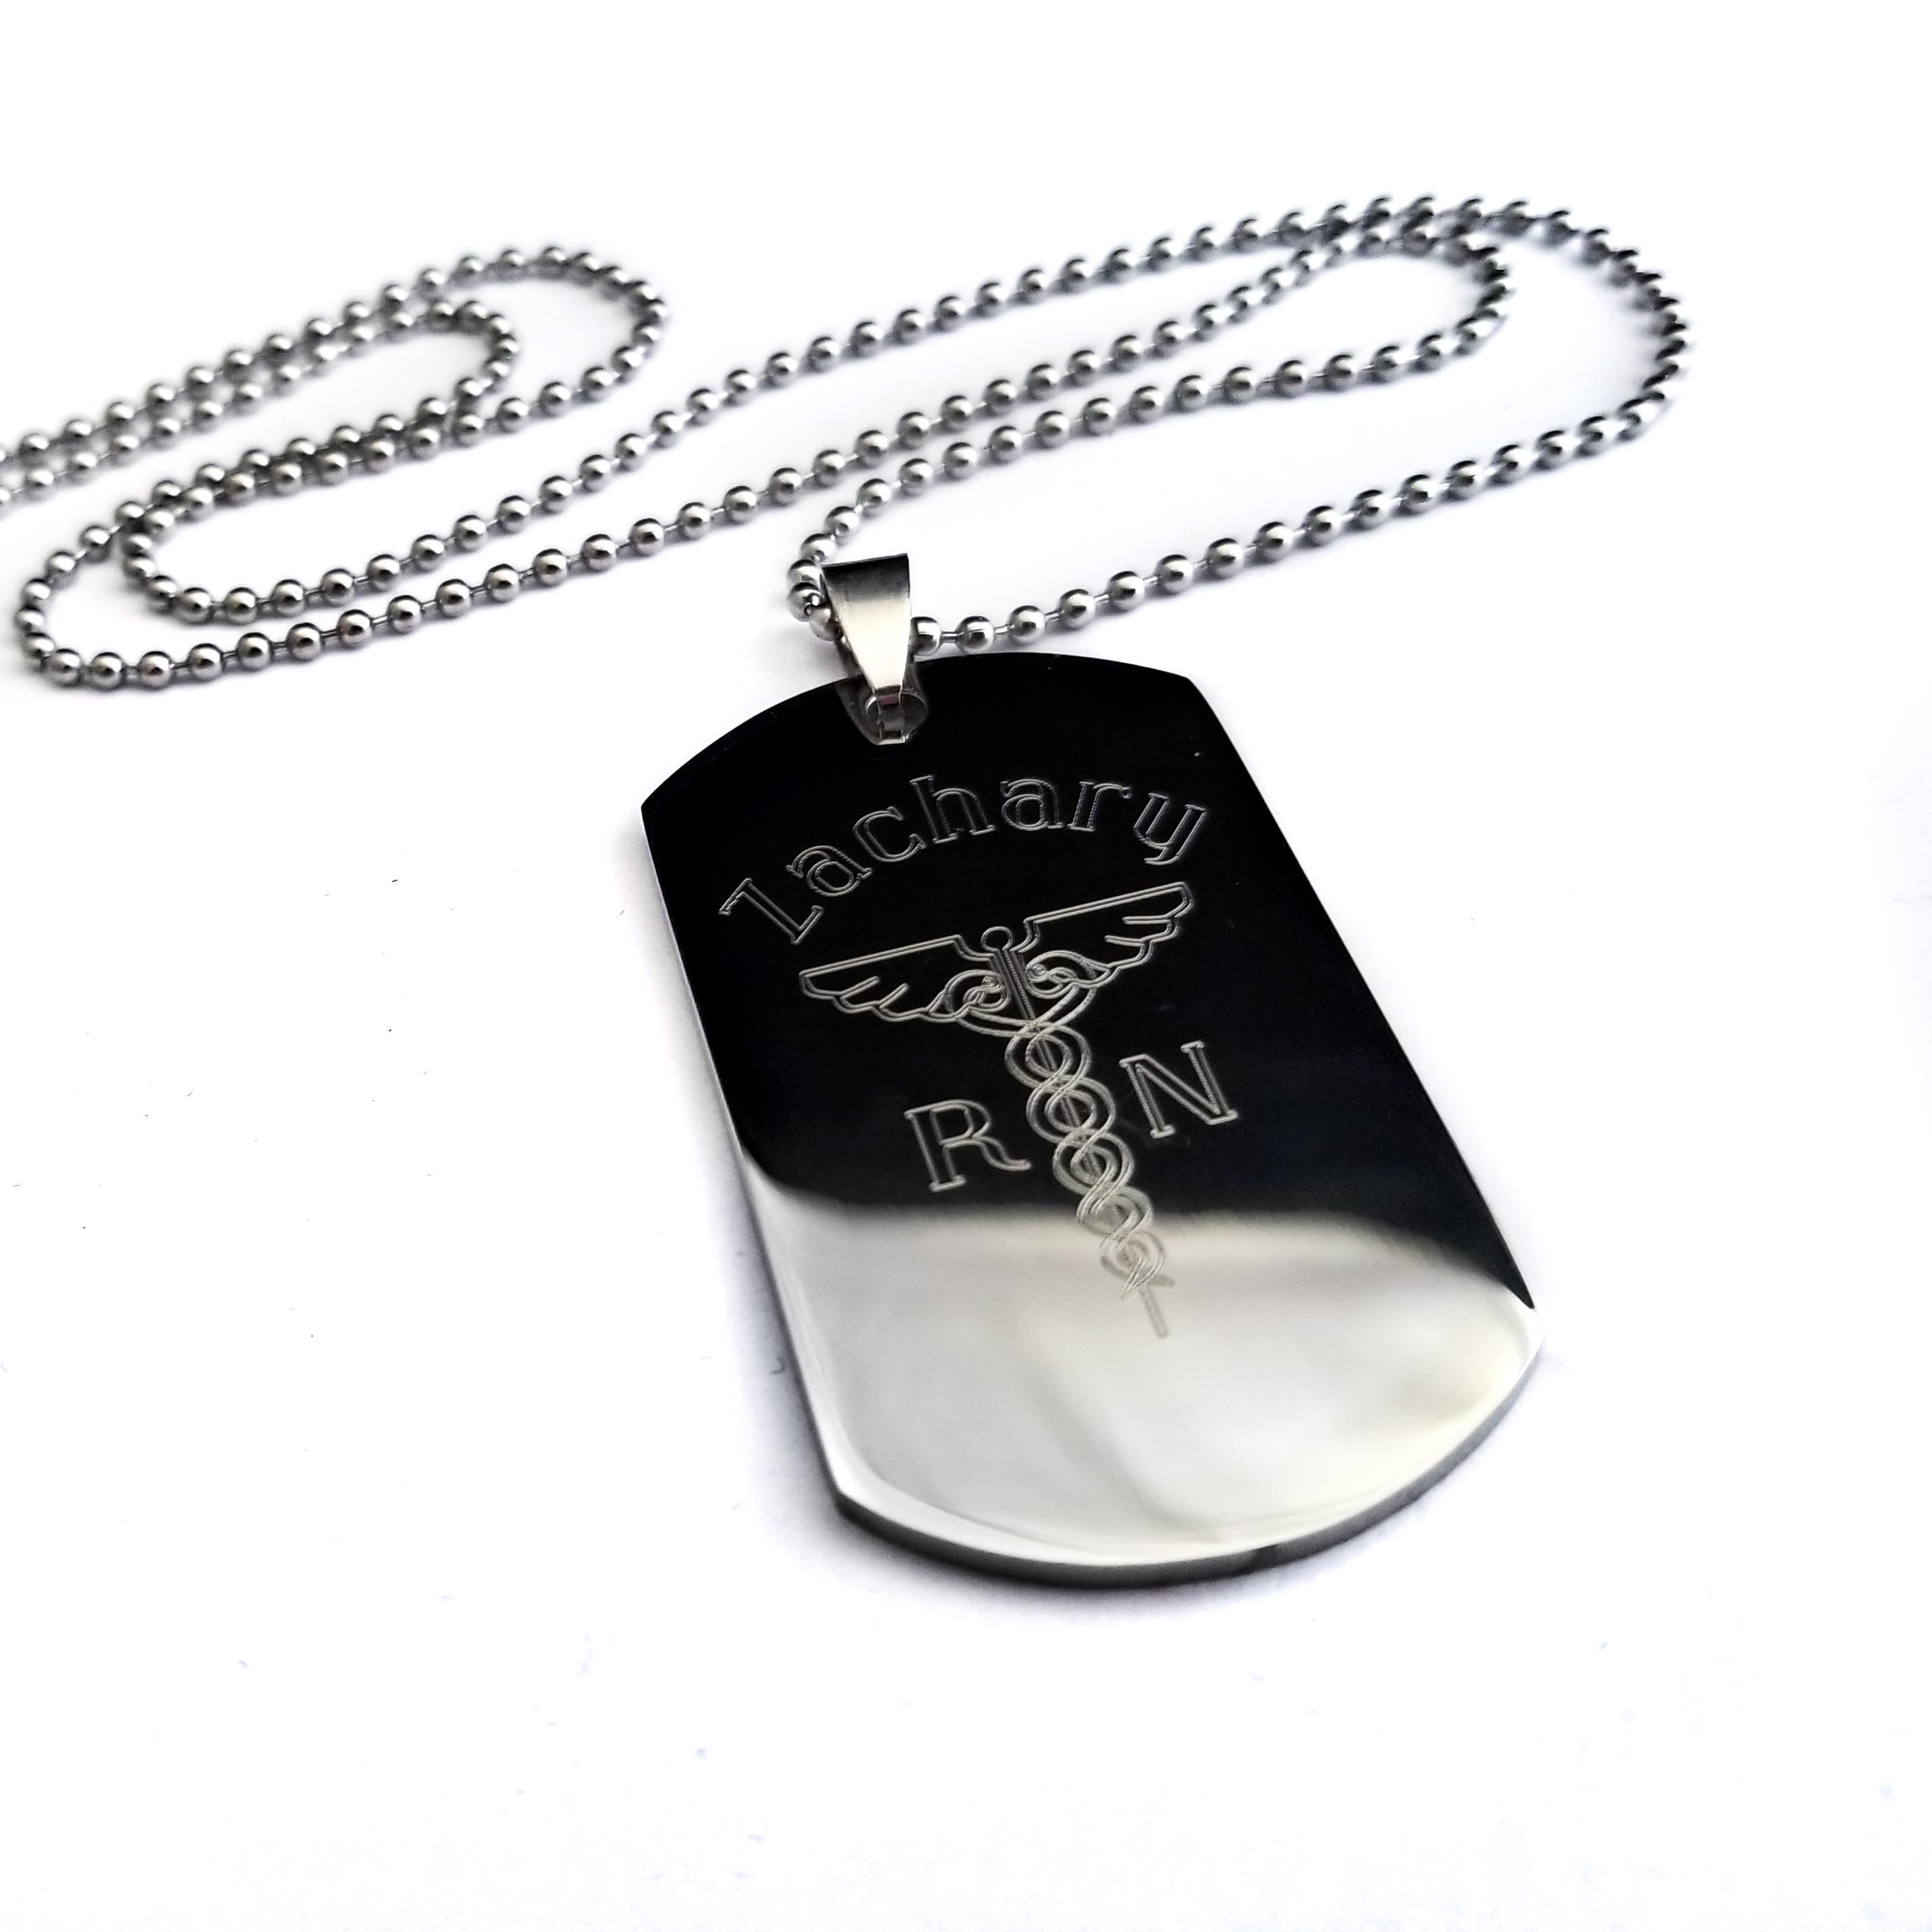 stainless steel zoom mv kaystore hover accent zm to kay dog lockets tag en men necklace s diamond mens